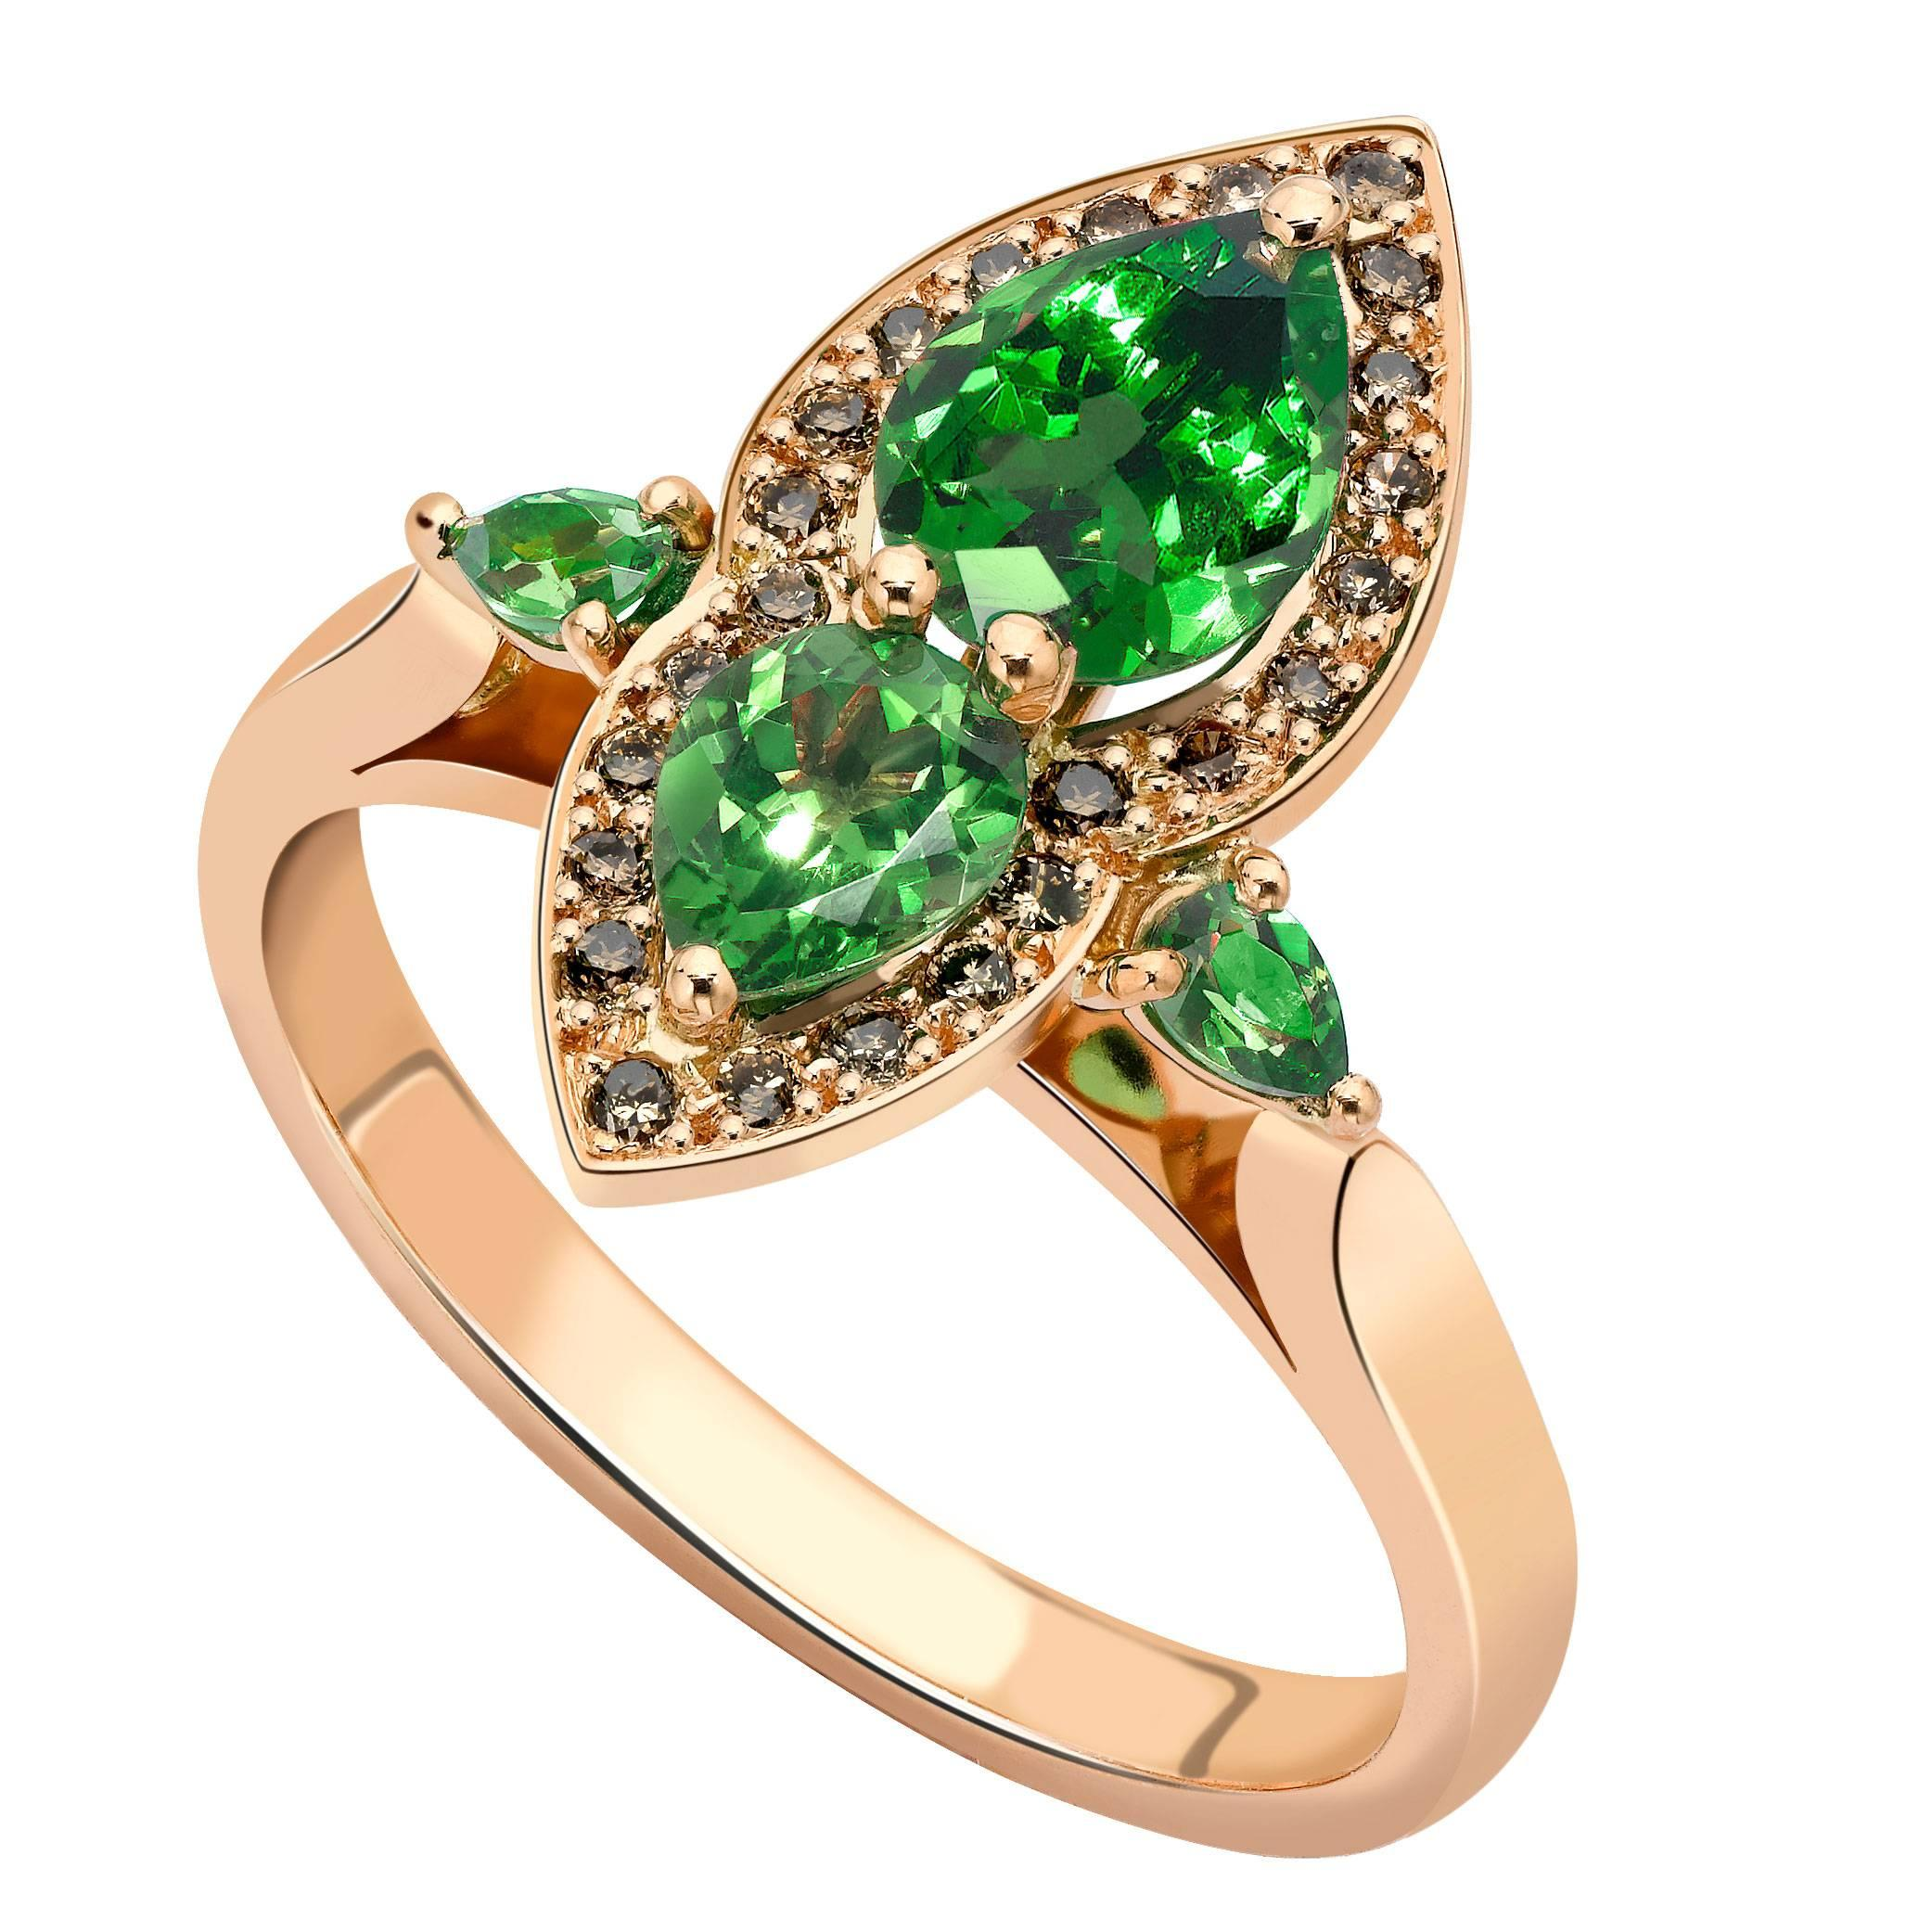 tsavorite sophie nontraditional brides engagement unique for stunning gallery bride rings unconventional the